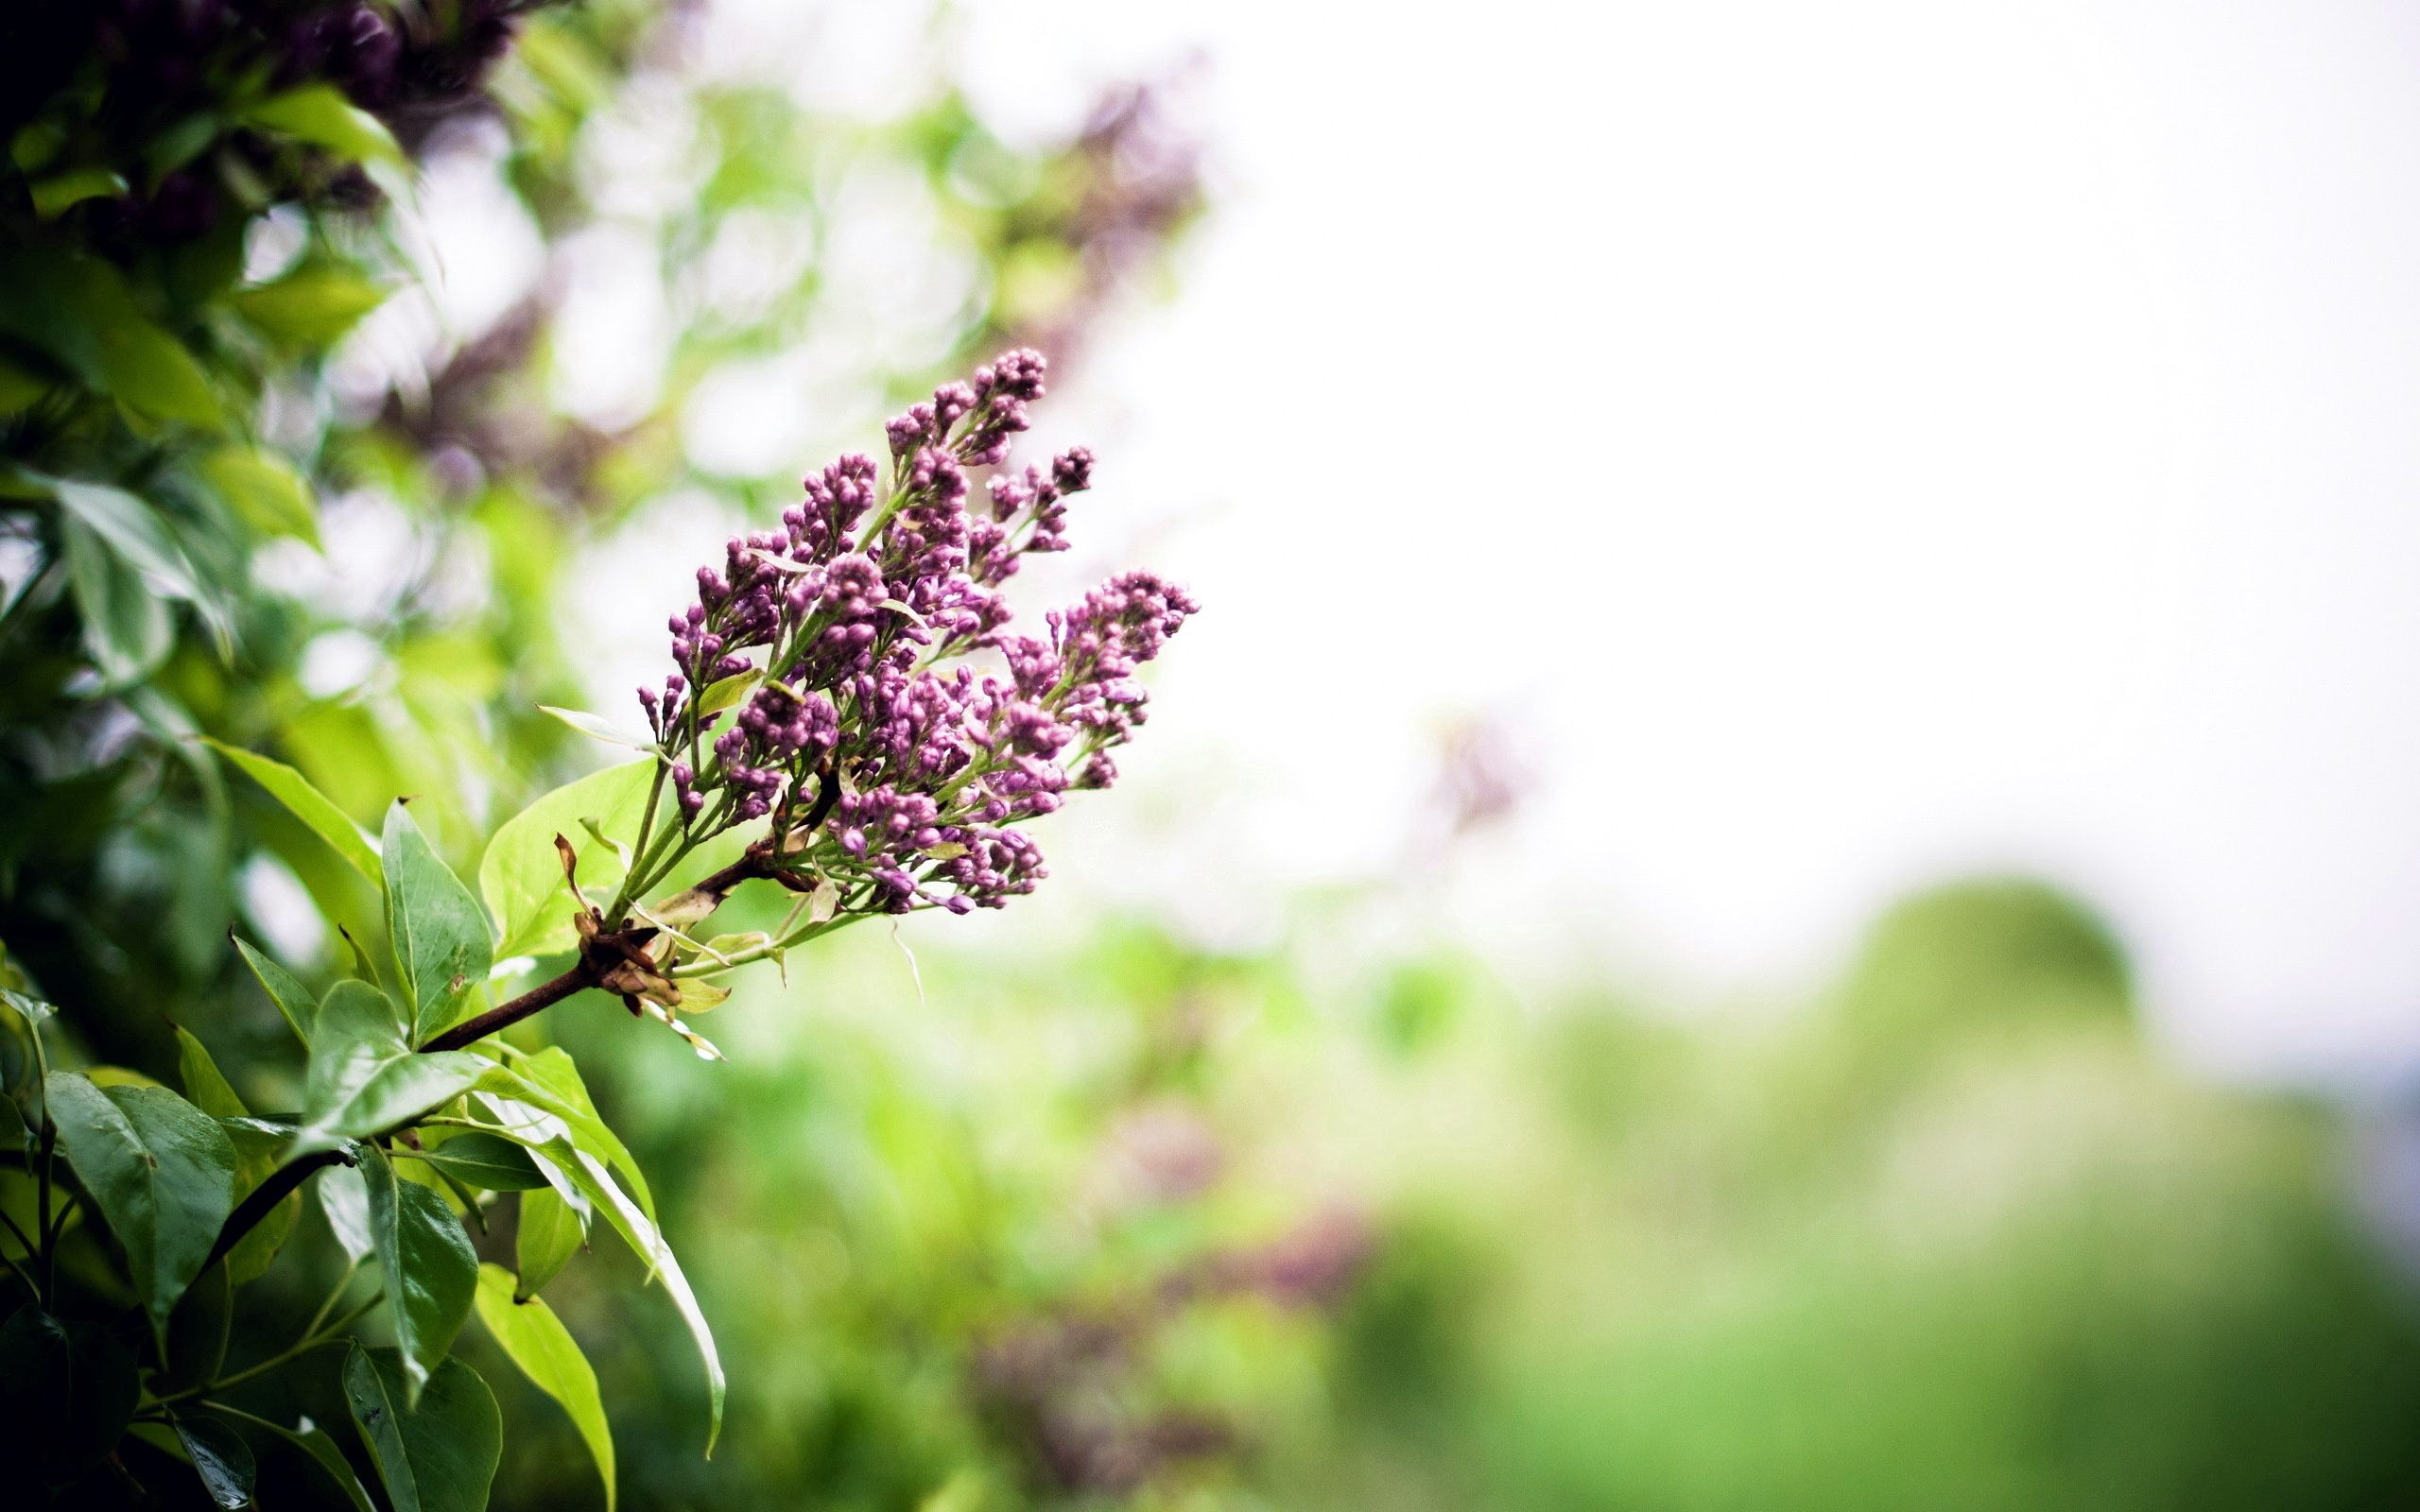 117468 download wallpaper Nature, Flowers, Lilac, Branch, Spring screensavers and pictures for free